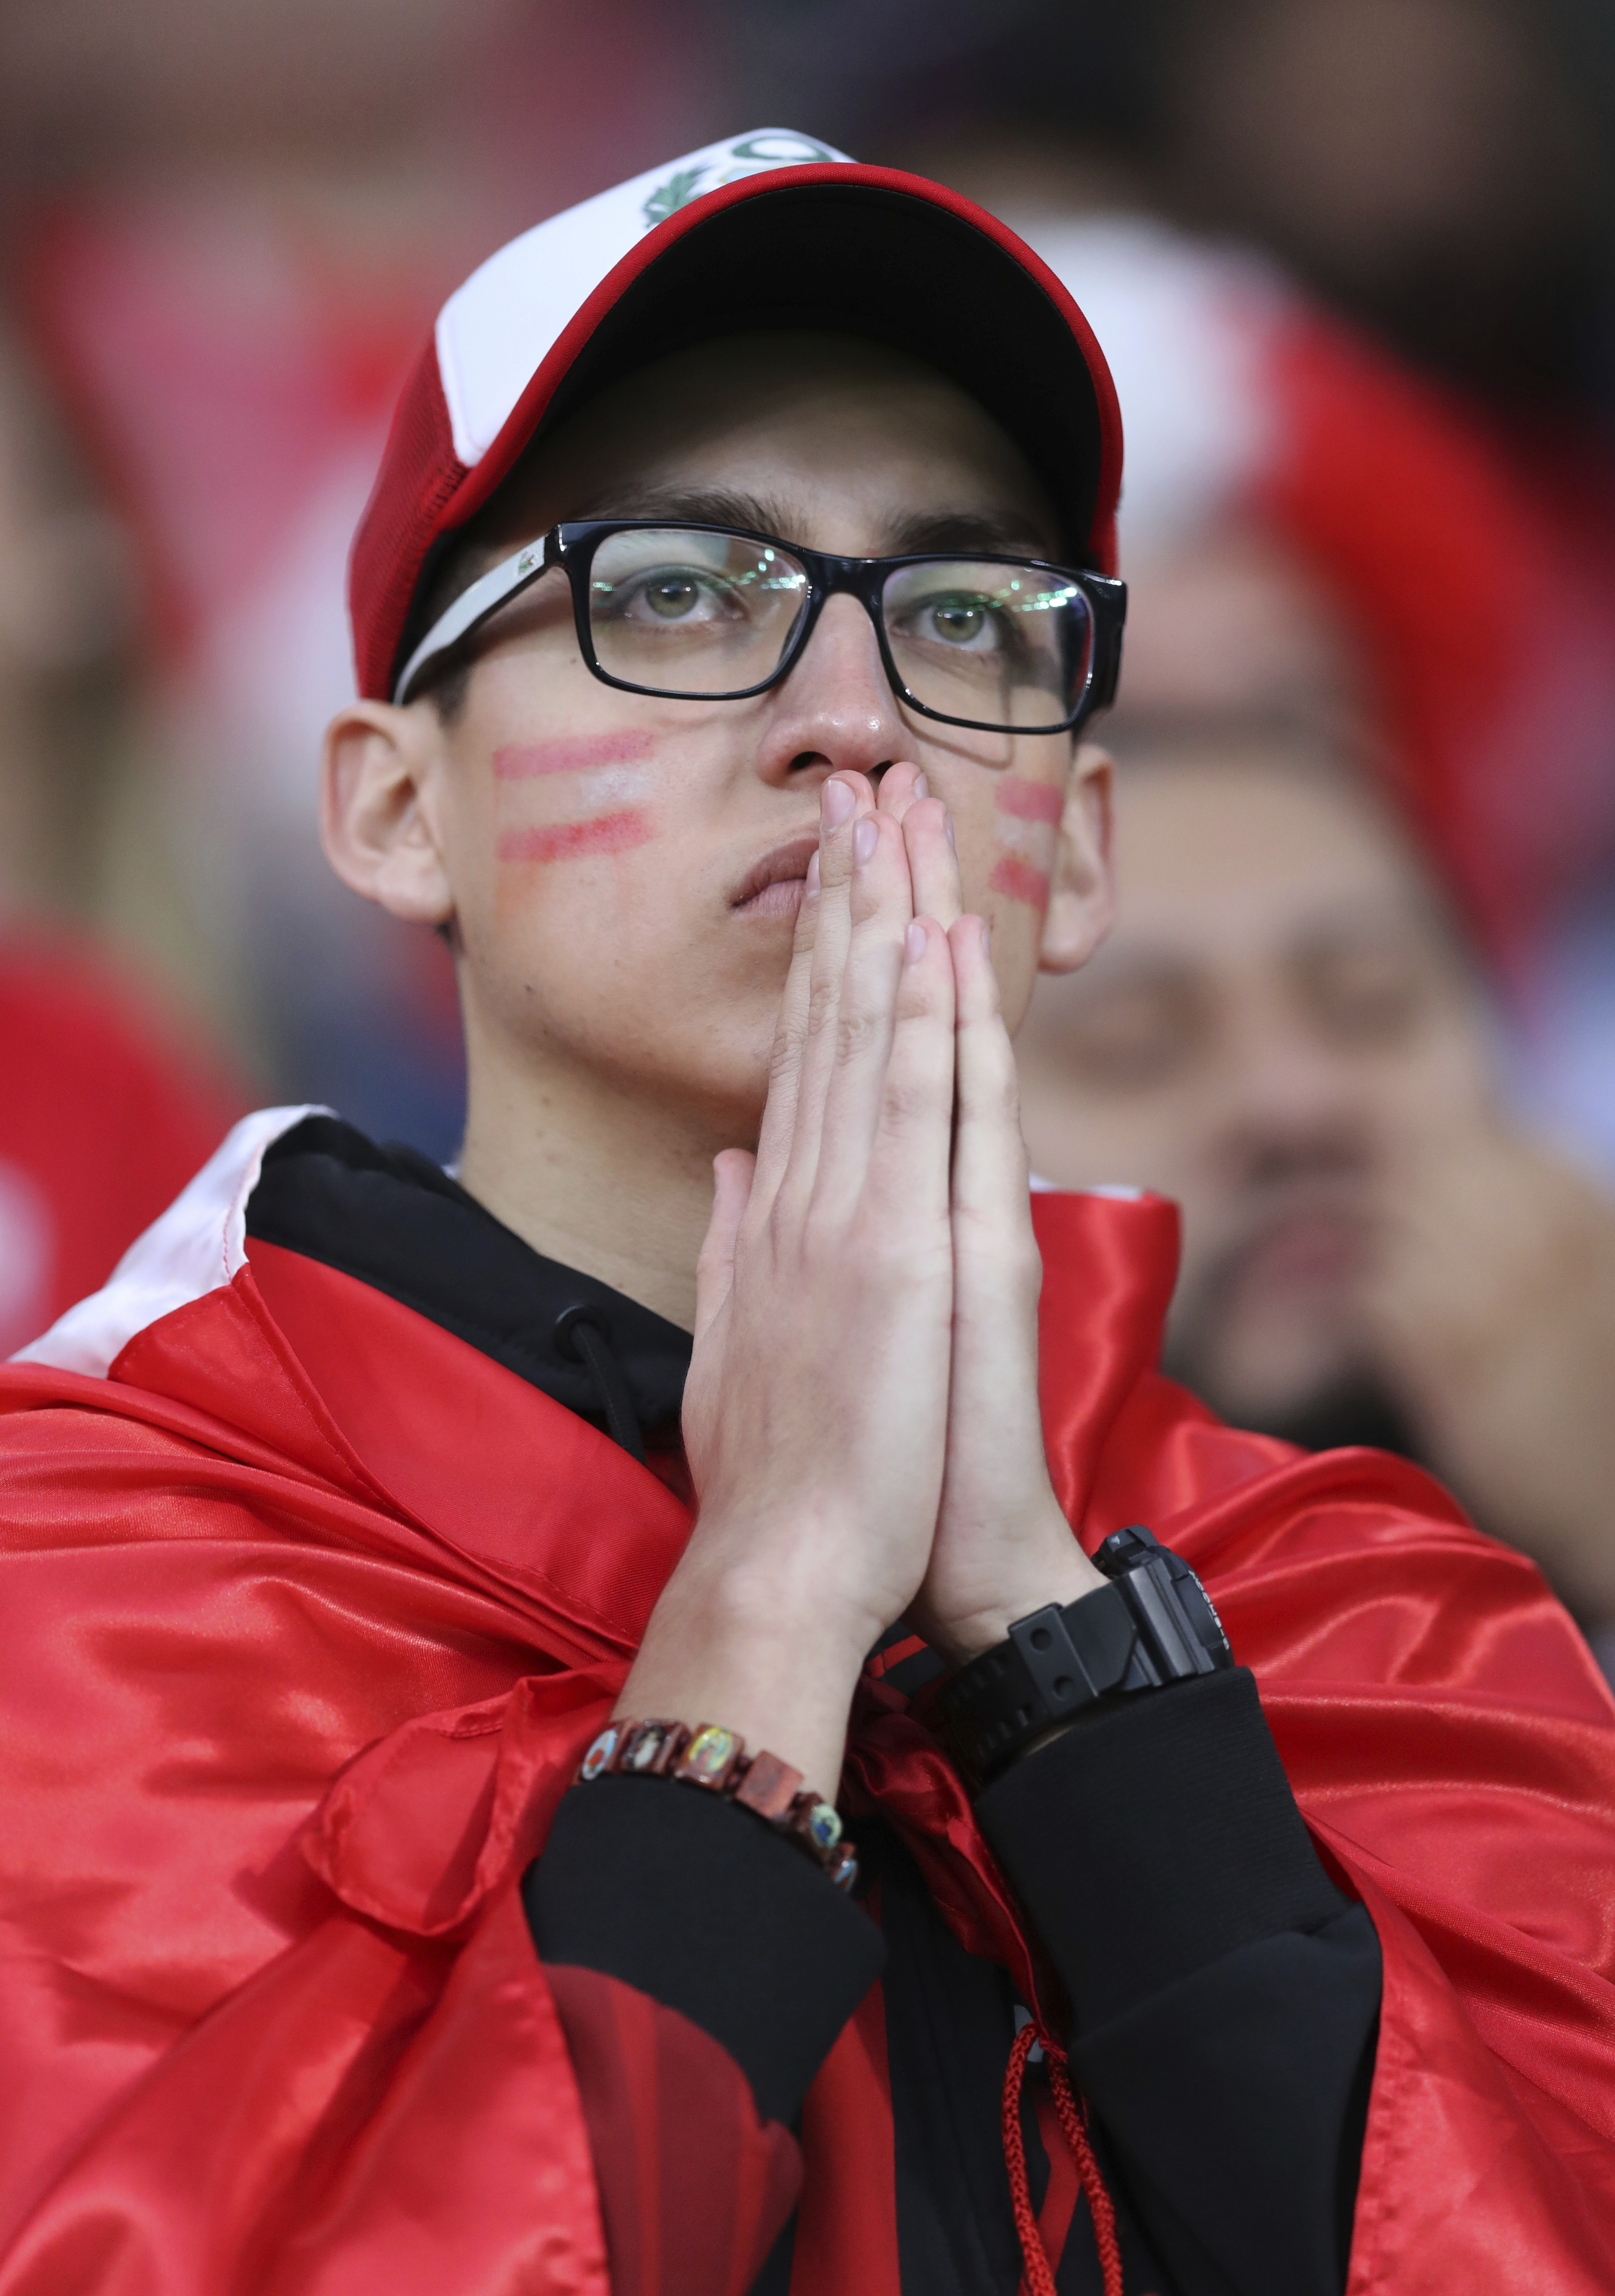 <div class='meta'><div class='origin-logo' data-origin='none'></div><span class='caption-text' data-credit='David Vincent/AP Photo'>A Peruvian fan watches the game from stands during the group C match between France and Peru  in the Yekaterinburg Arena in Yekaterinburg, Russia on June 21, 2018.</span></div>